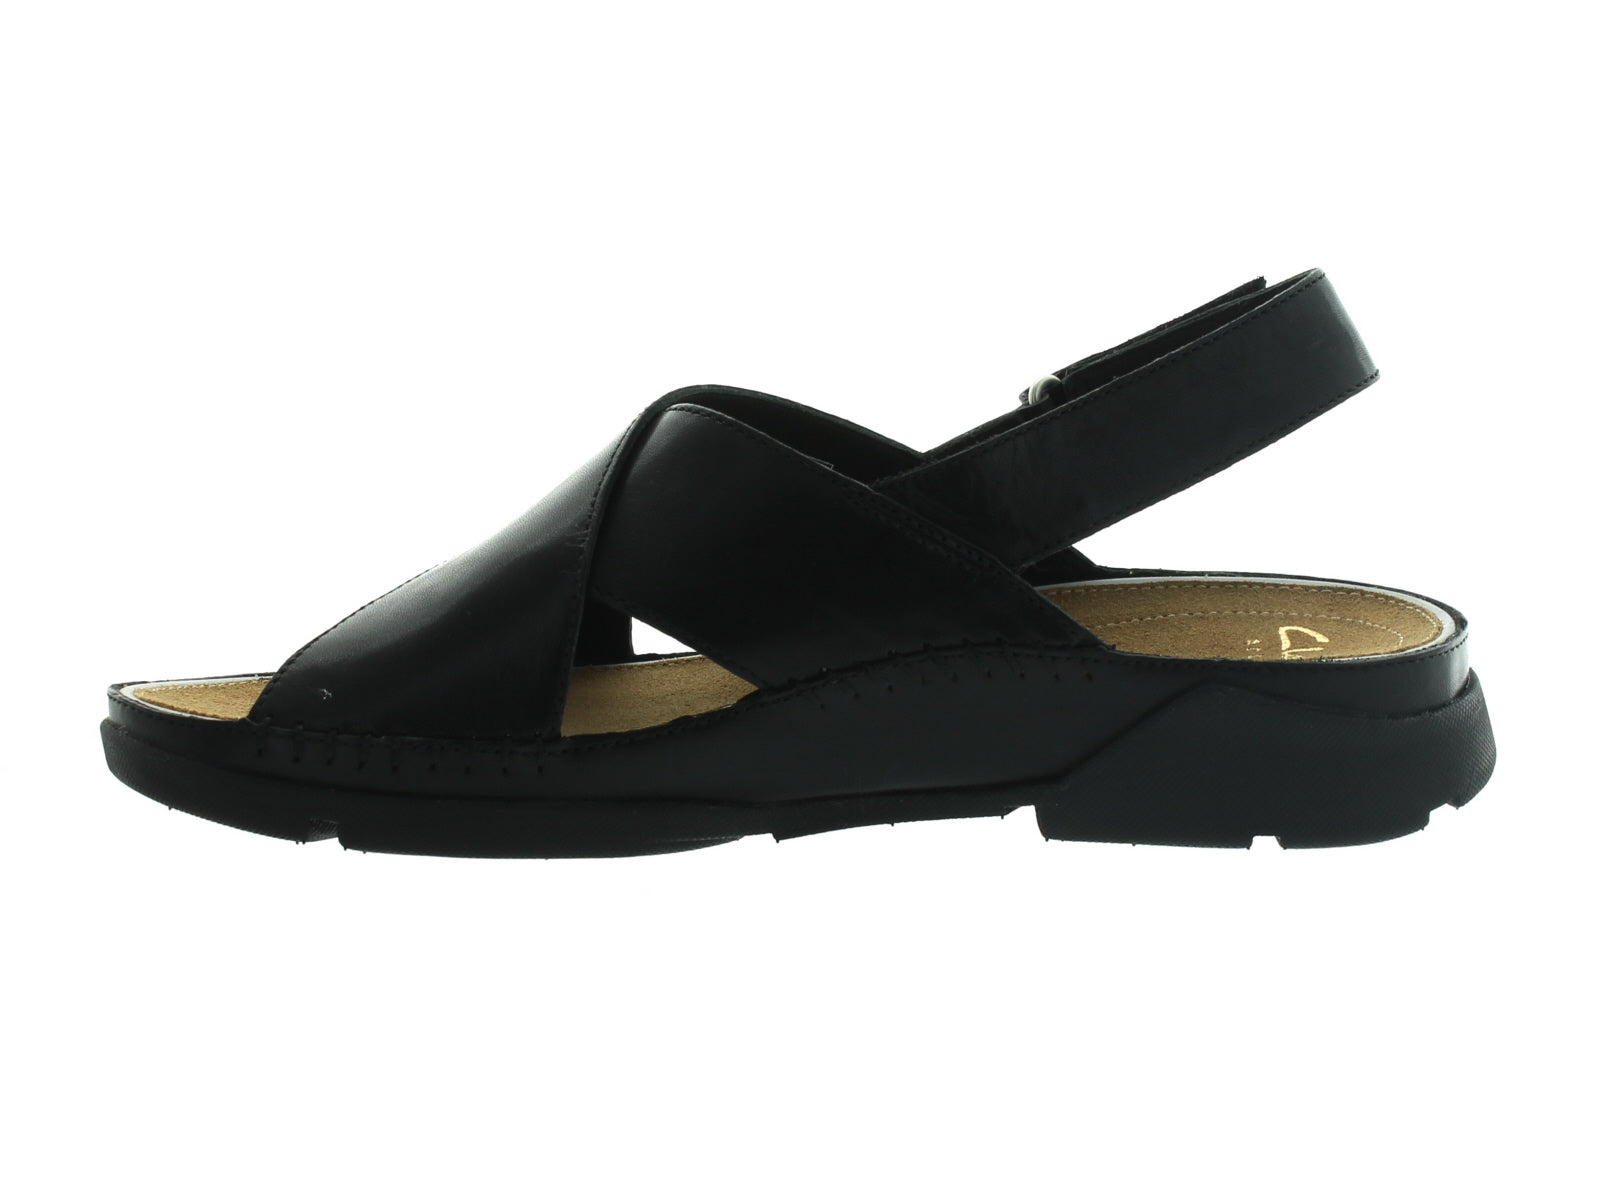 Clarks Tri Alexia in Black Leather inner view